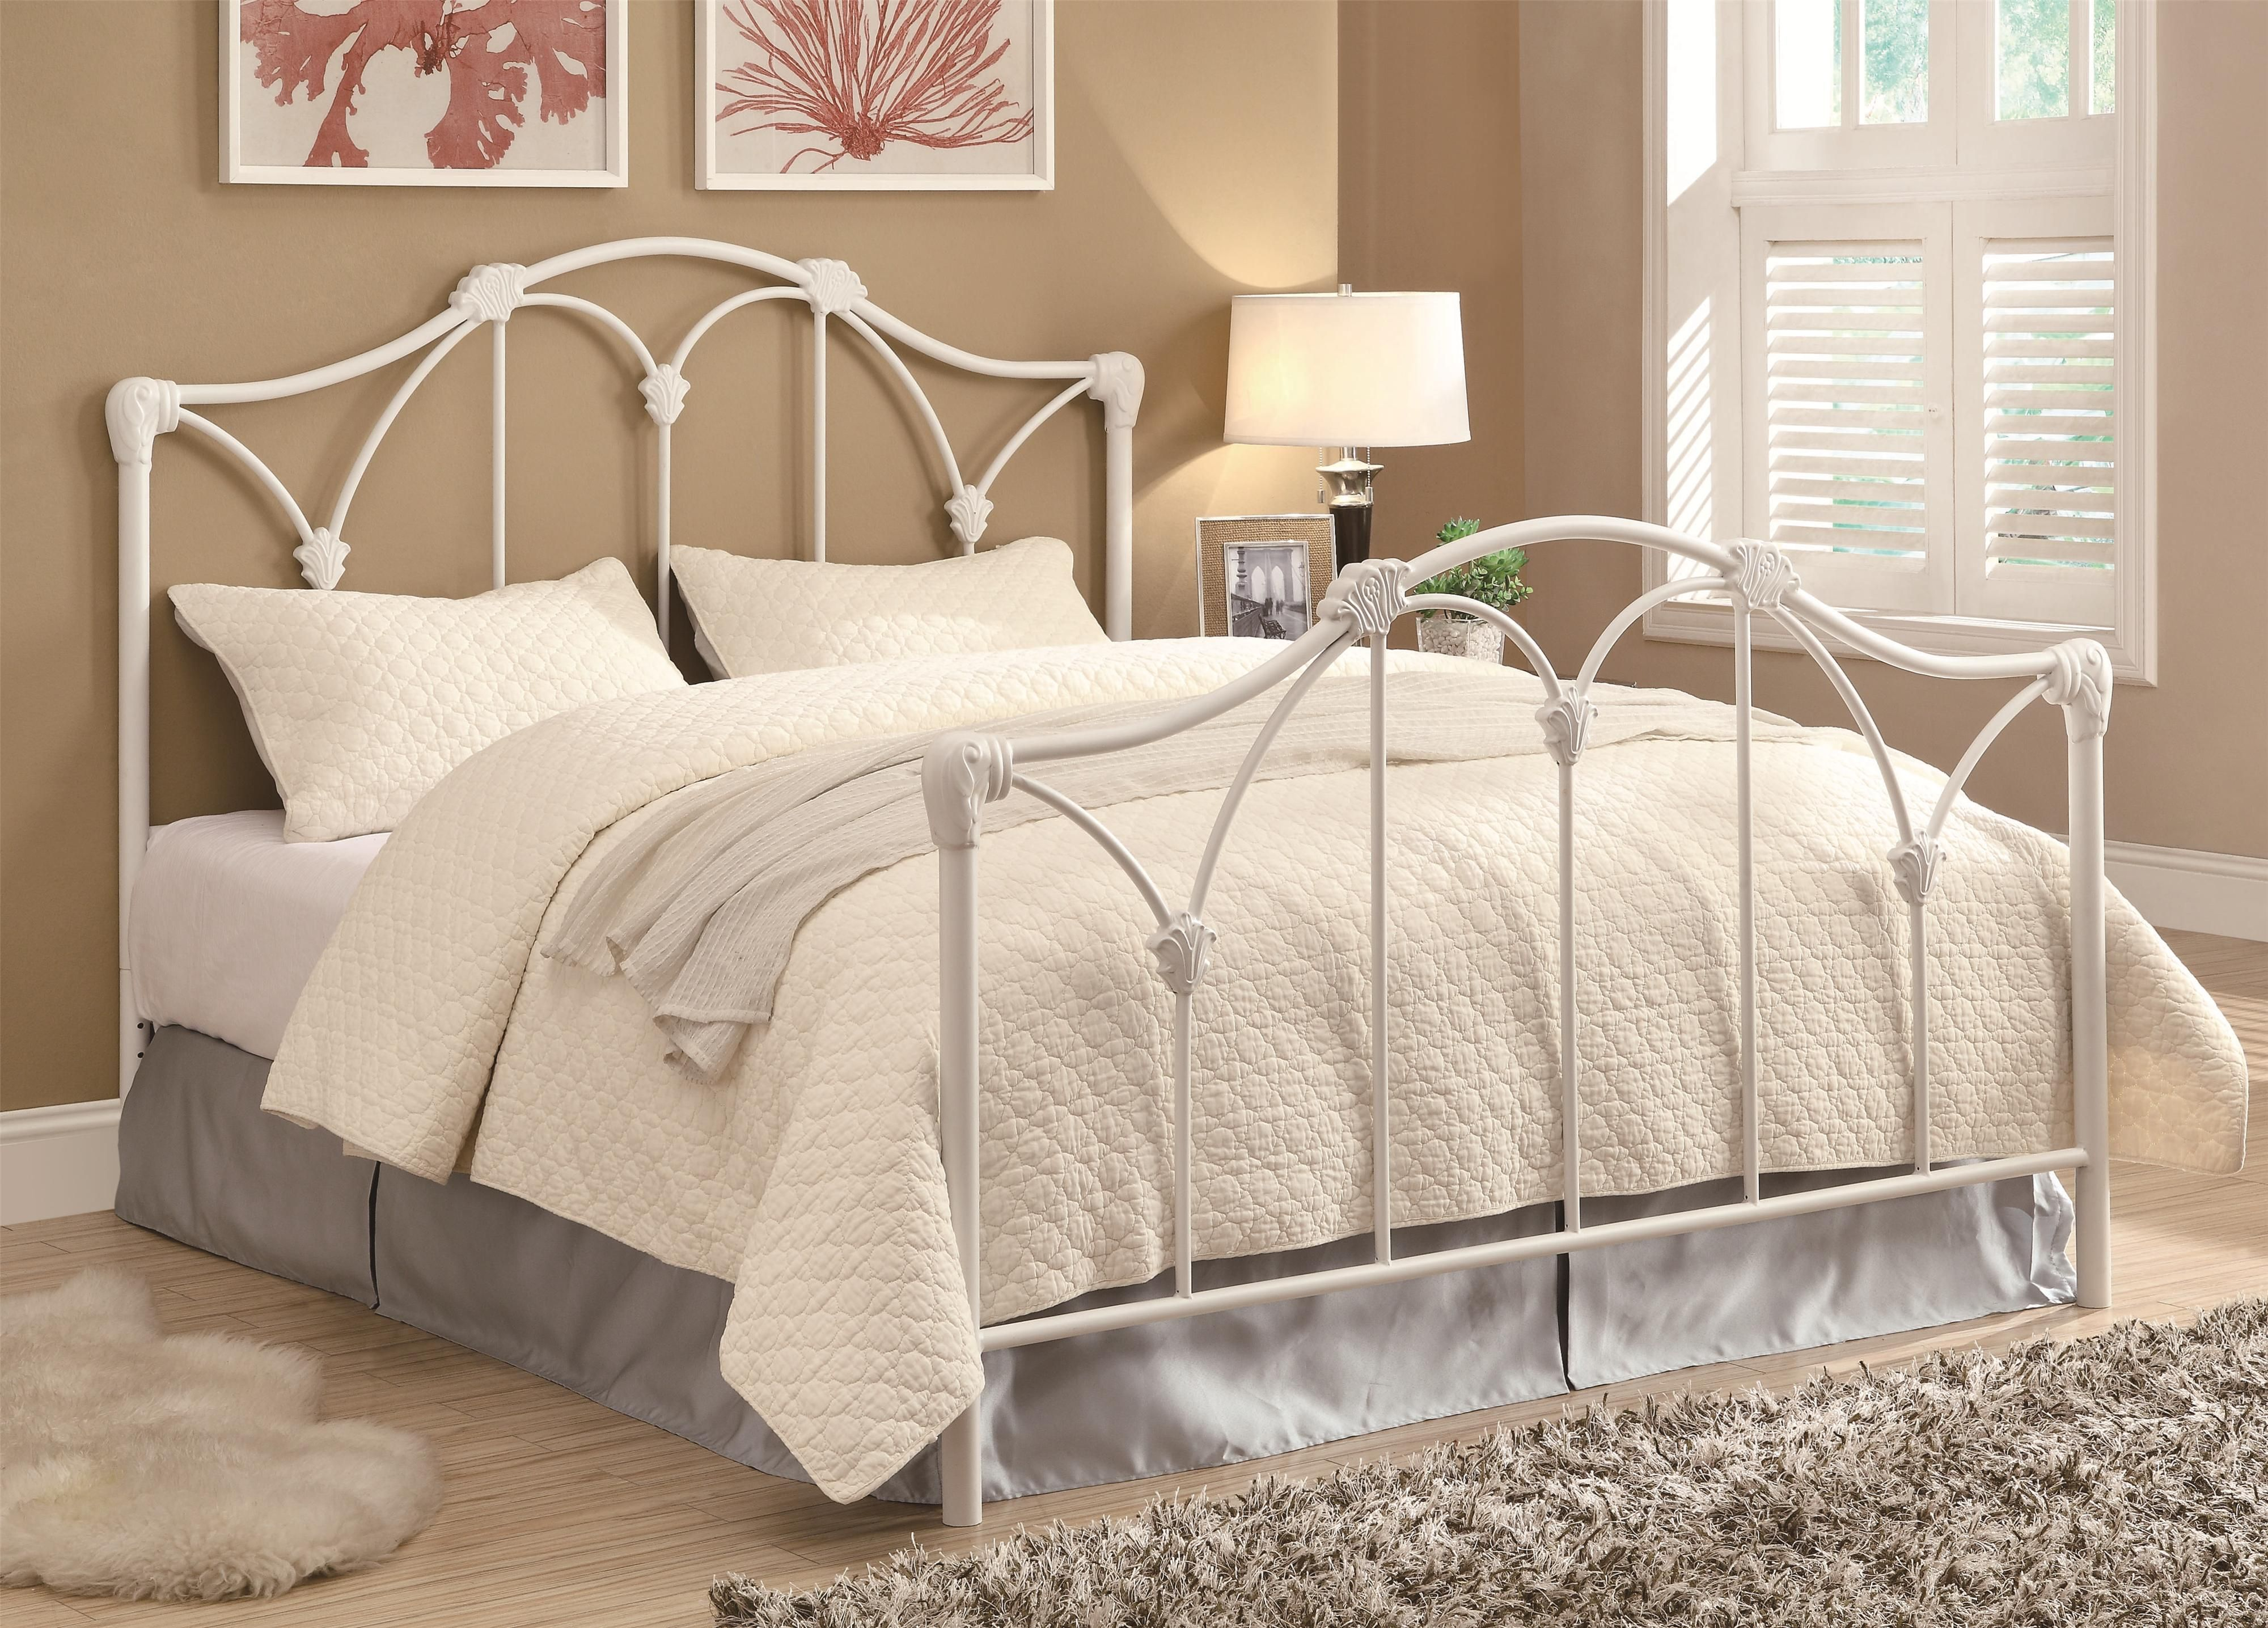 Iron Beds and Headboards Queen Bed by Coaster White iron